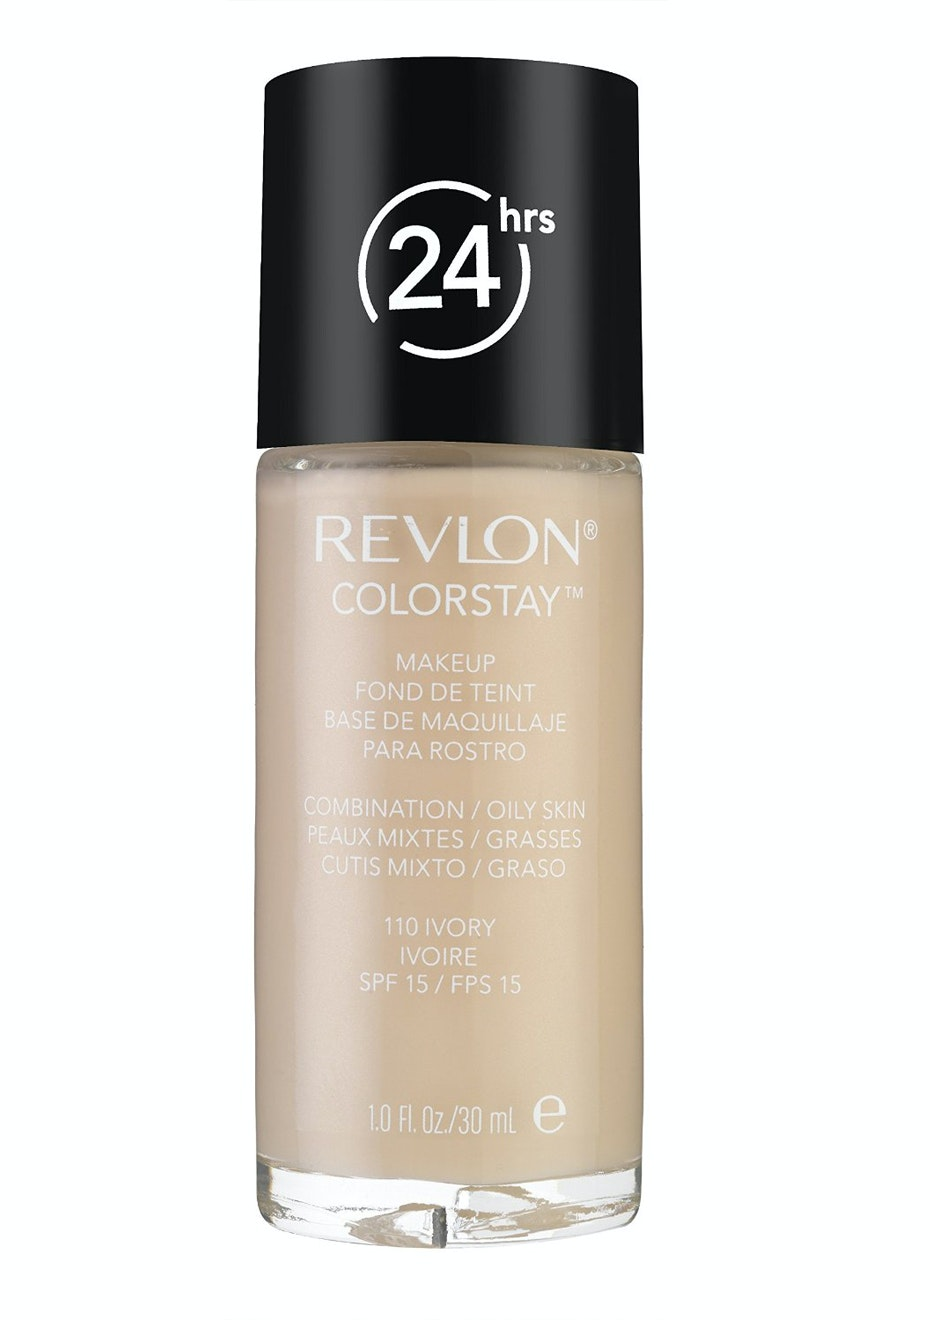 Revlon Colorstay 24hrs Liquid Makeup Combo/Oily 110 Ivory